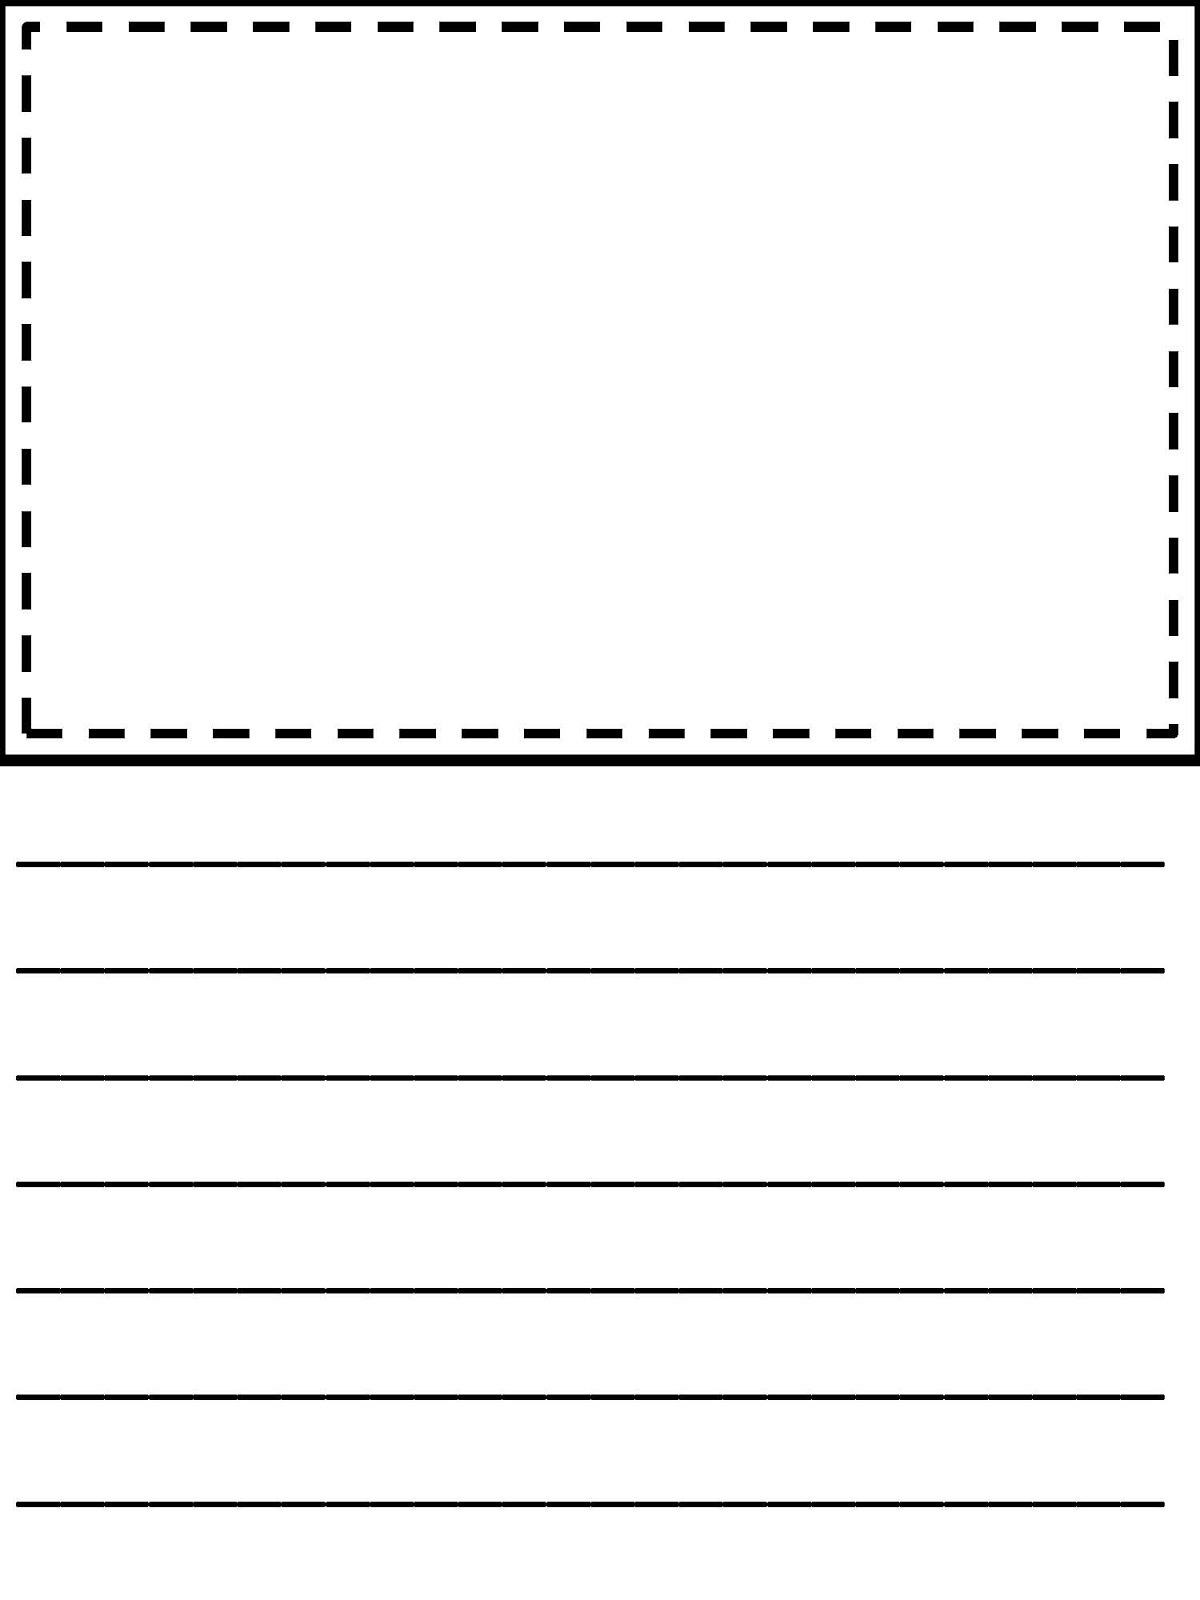 Writing Paper With Room For Drawings Page Abcteach K Reader  Handwriting Paper Printable Free